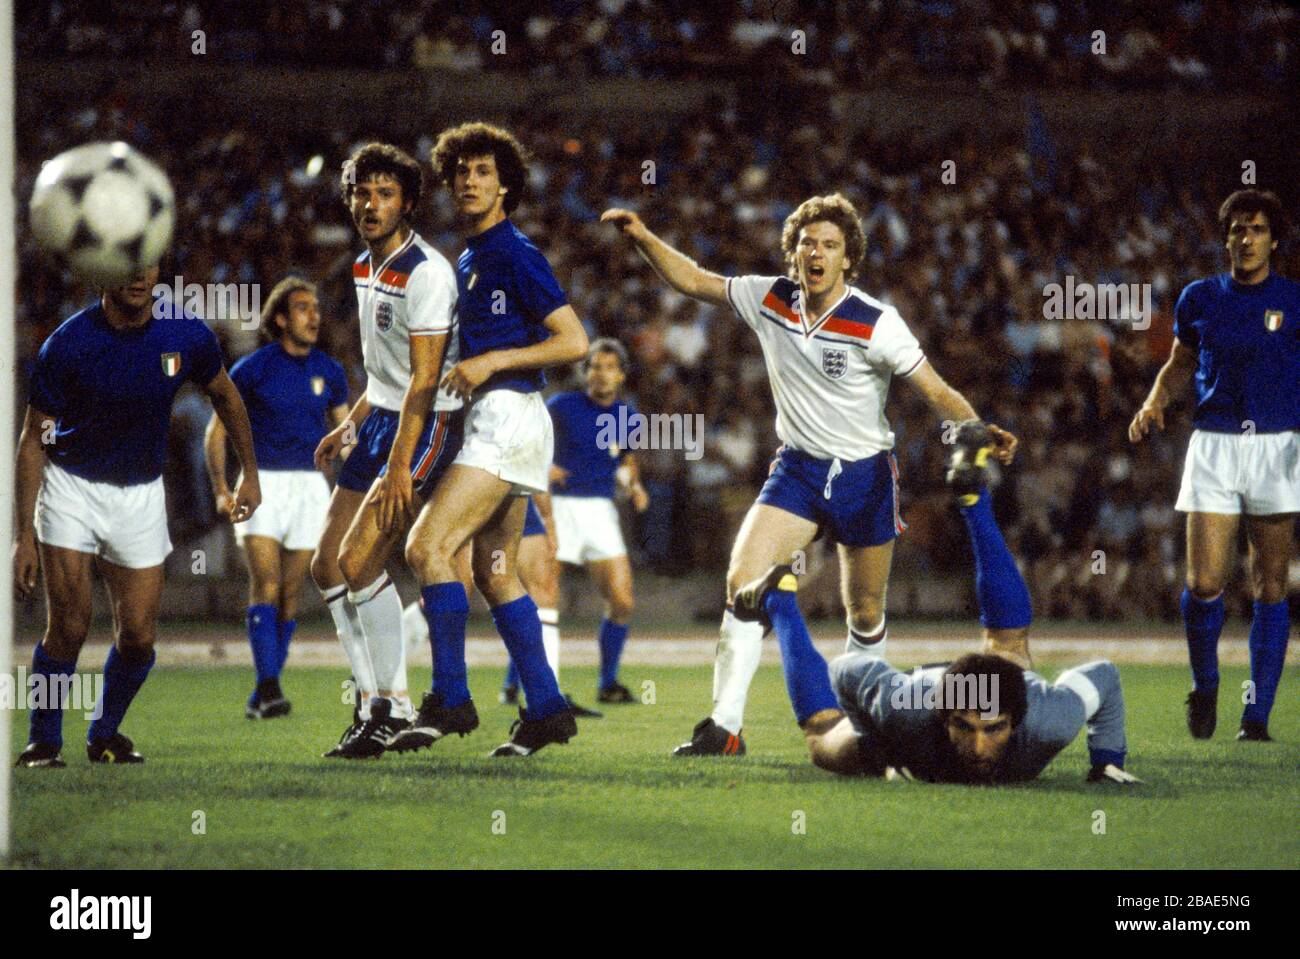 Italy Goalkeeper Dino Zoff (on Floor) makes a great save as England's Garry Birtles and Tony             Woodcock look on Stock Photo